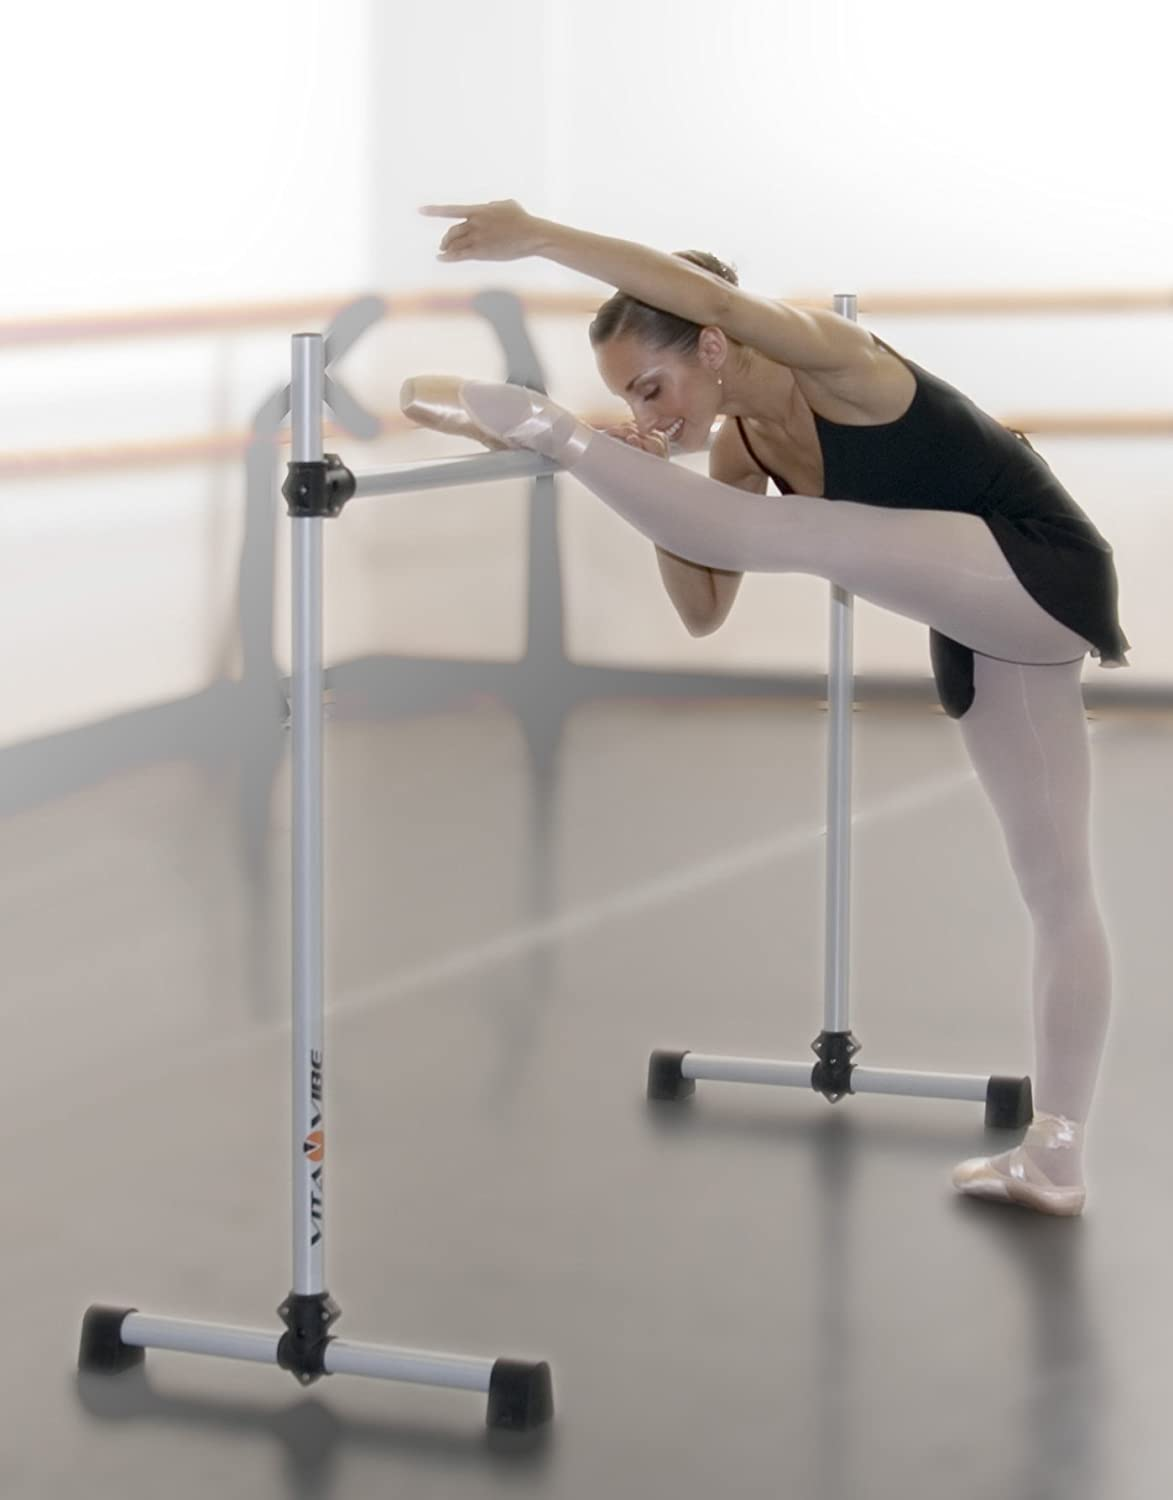 Vita Vibe - Prodigy Portable Single Barre - Freestanding Stretch/Dance Bar - Made in The USA 4 FT - 5 FT